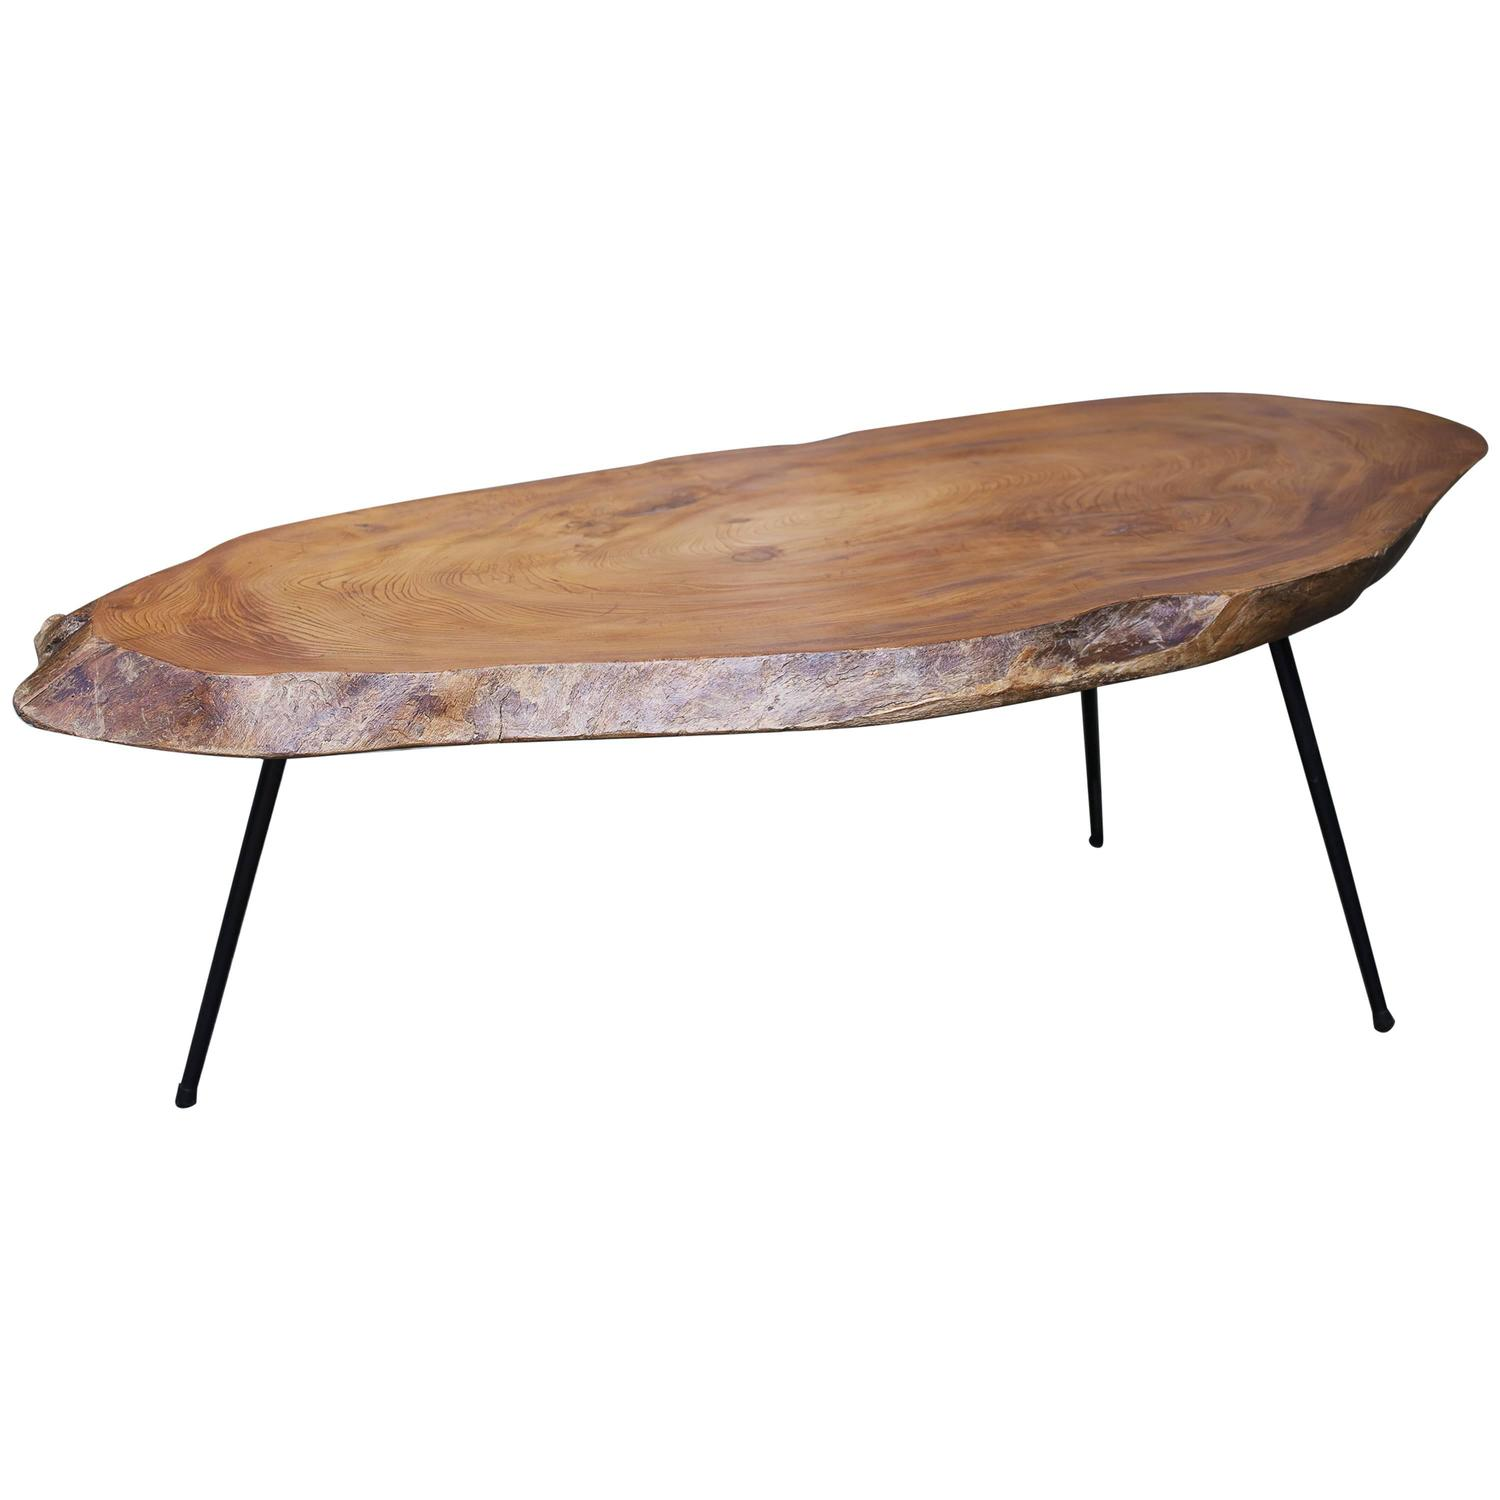 Tree Coffee Table Dk3: Tree Trunk Coffee Table In Nakashima Style At 1stdibs